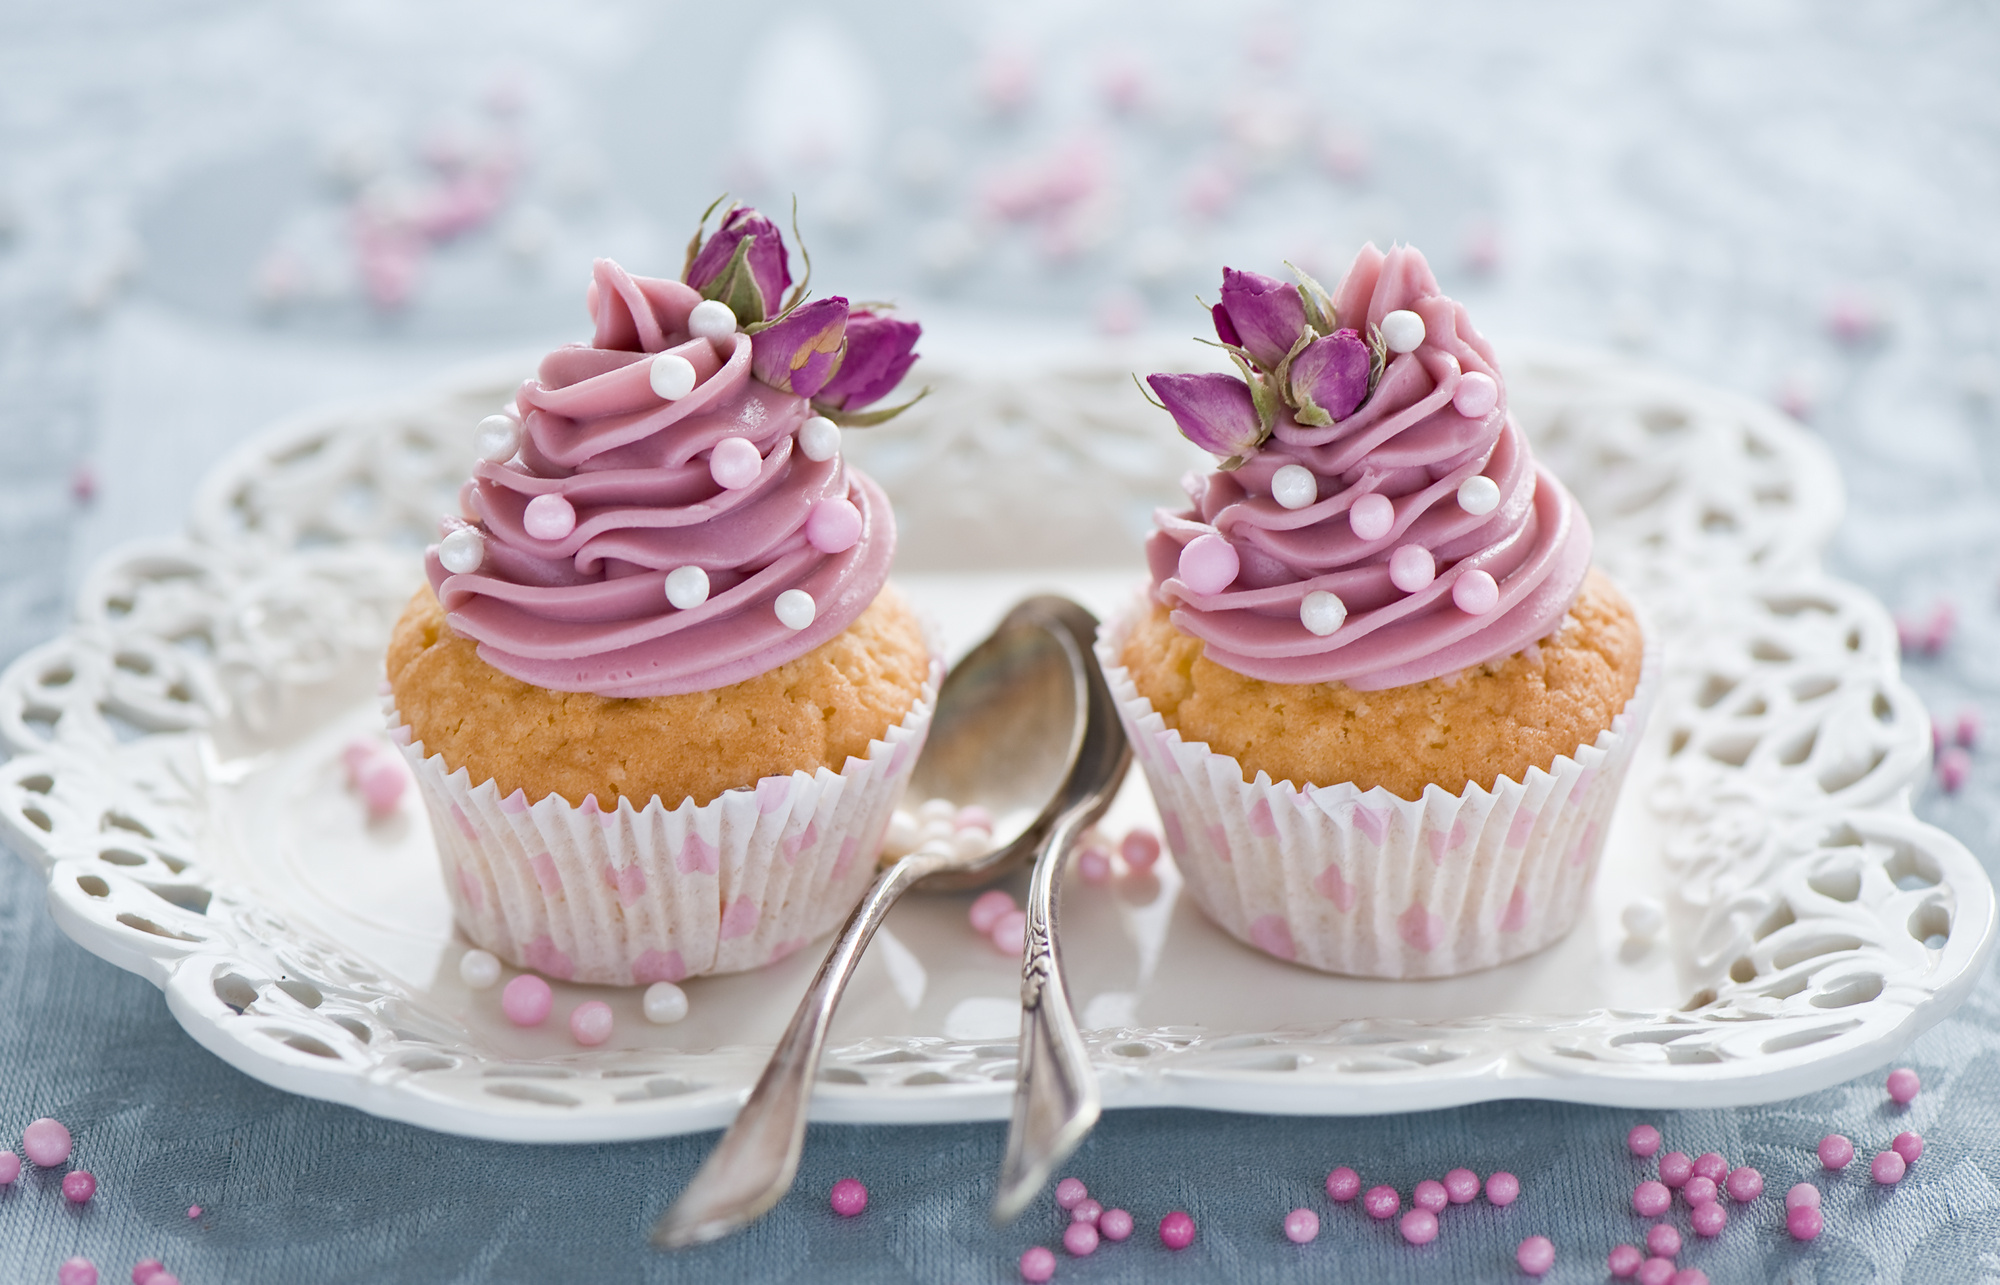 Wallpaper iPhone s  Cupcakes Love Cute Cupcake Backgrounds  Wallpaper  2000x1285